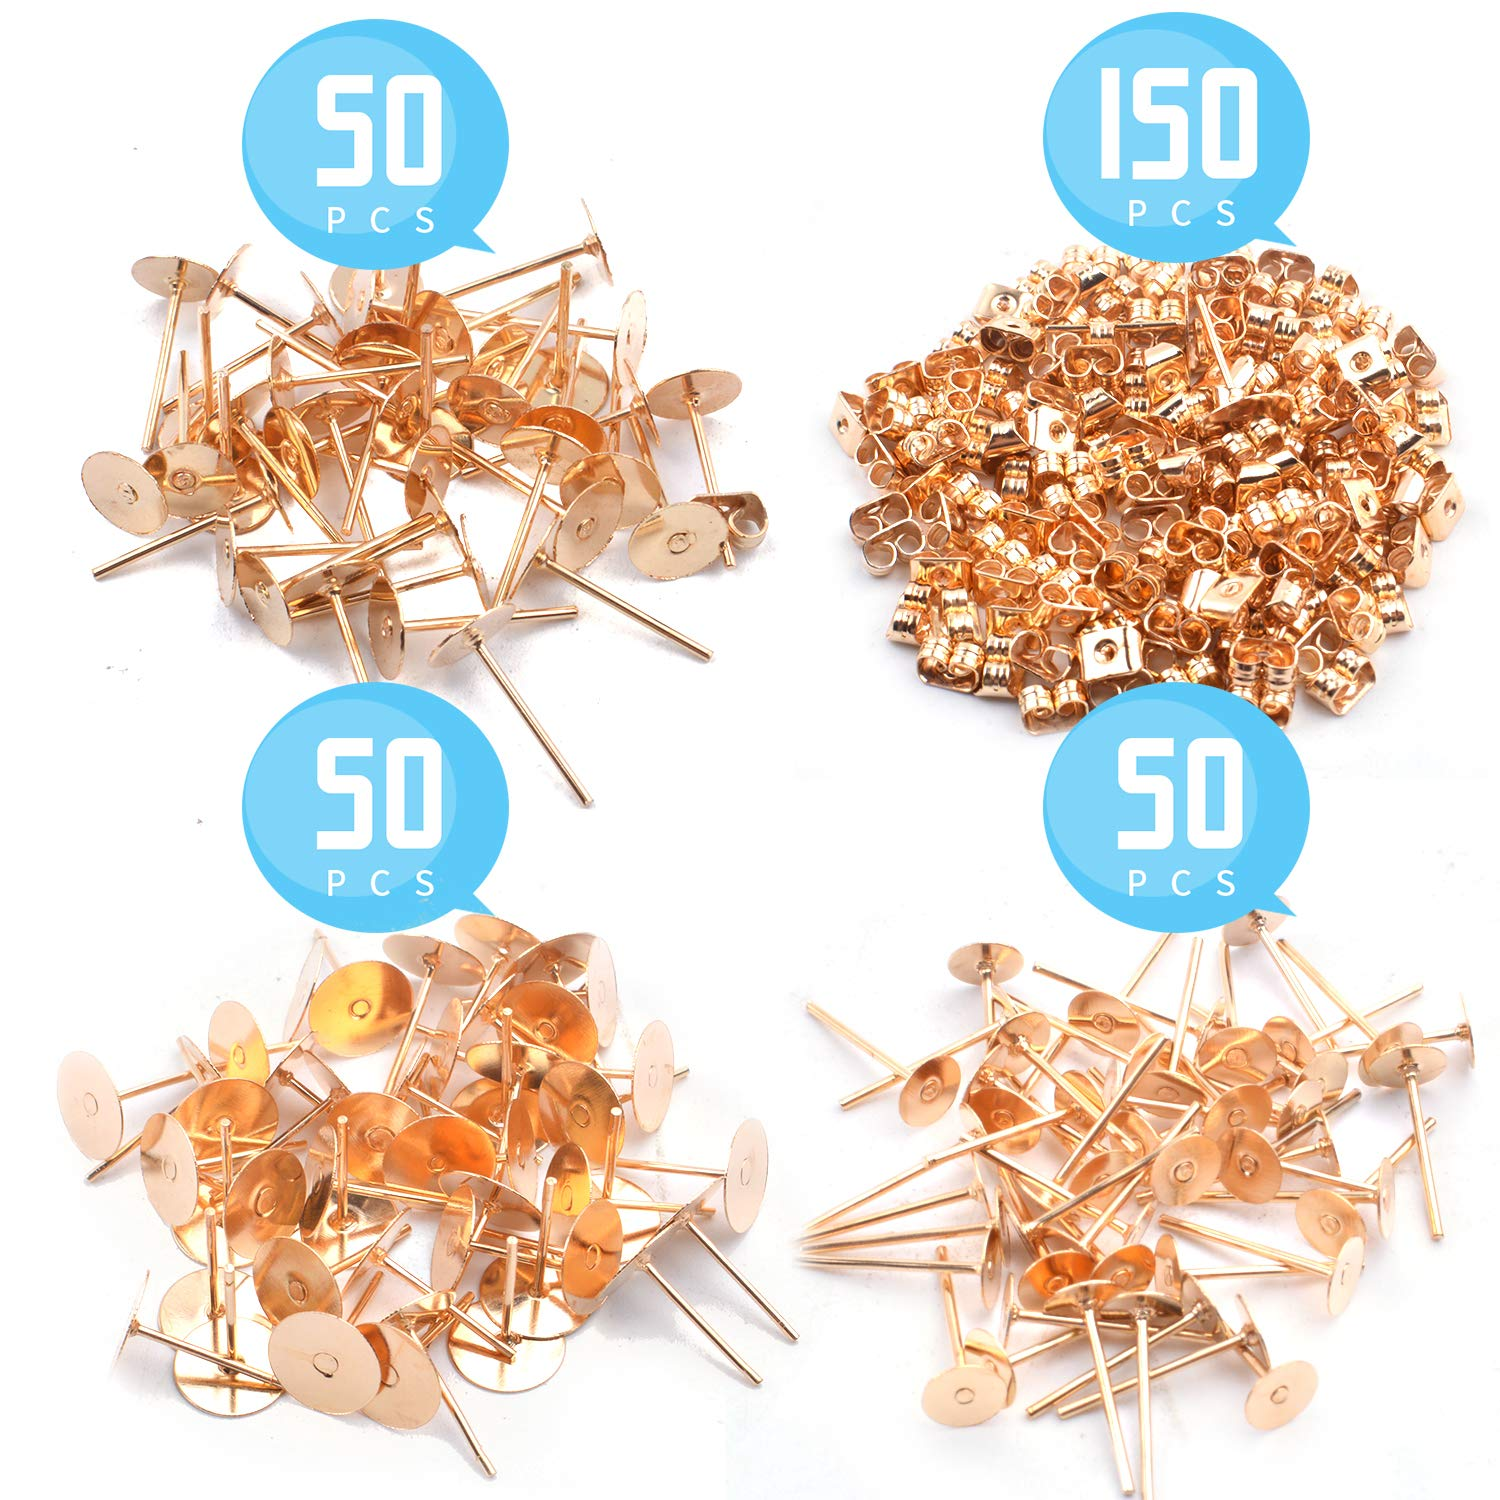 3 Sizes 150 Pieces Golden Flat Pad Earrings Posts Round Blank Earring Stud and 150 Pieces Butterfly Earrings Safety Backs for Earring Making